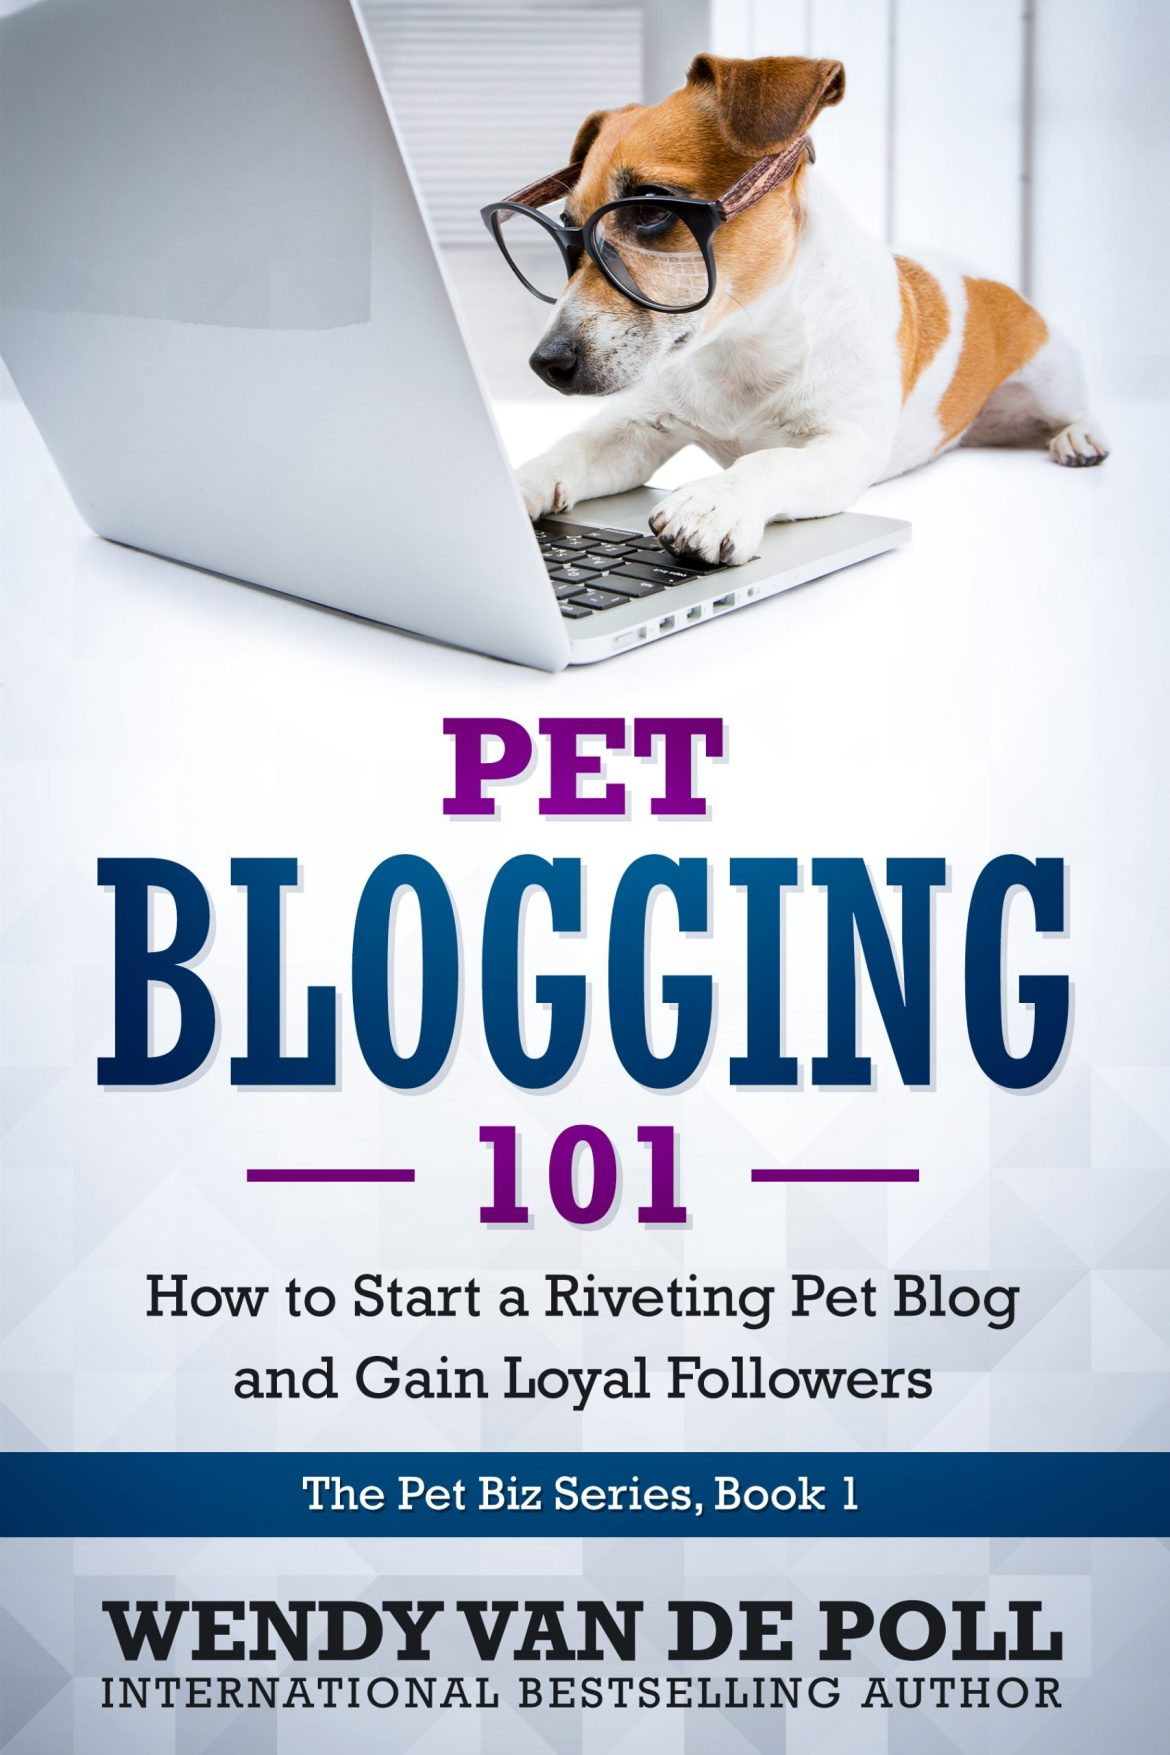 Pet Blogging 101